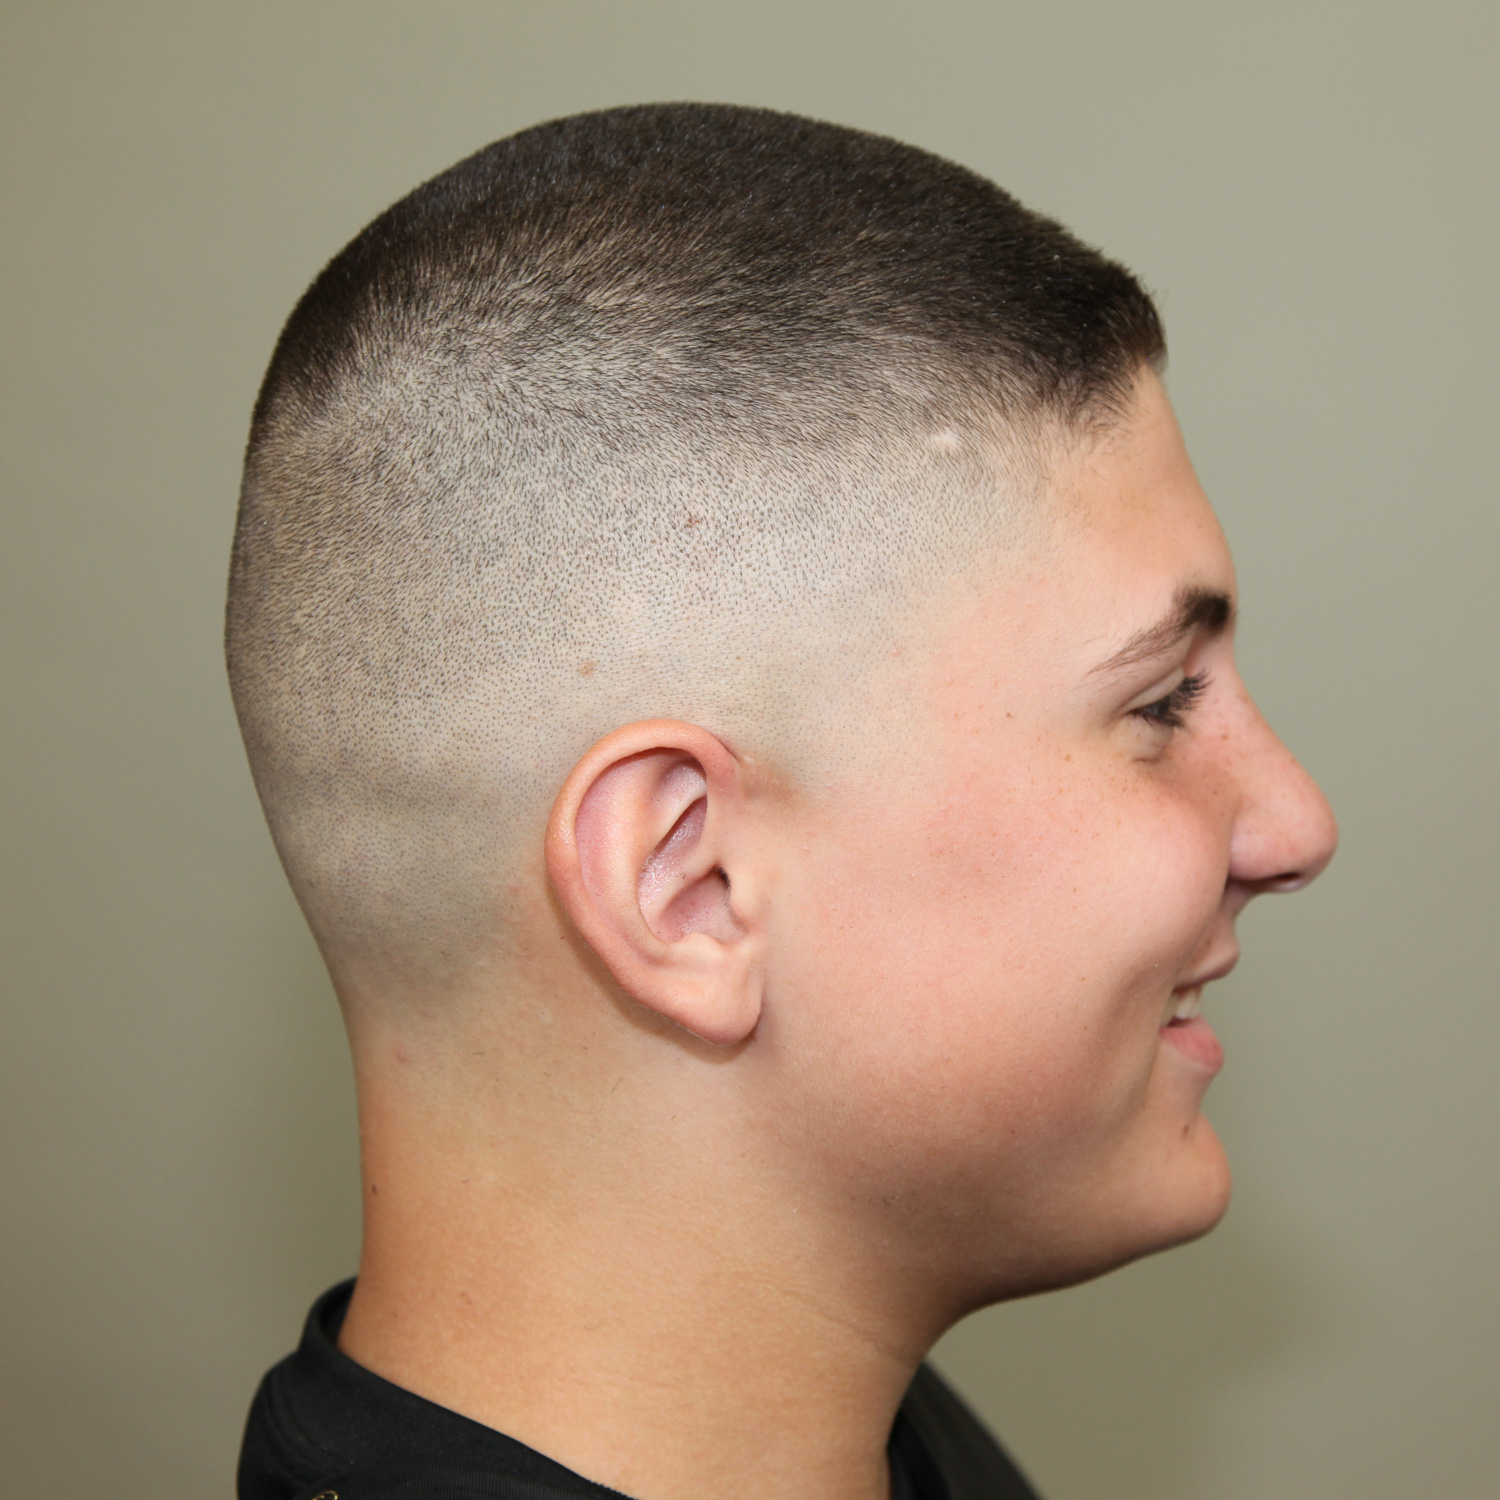 Marine high and tight haircut